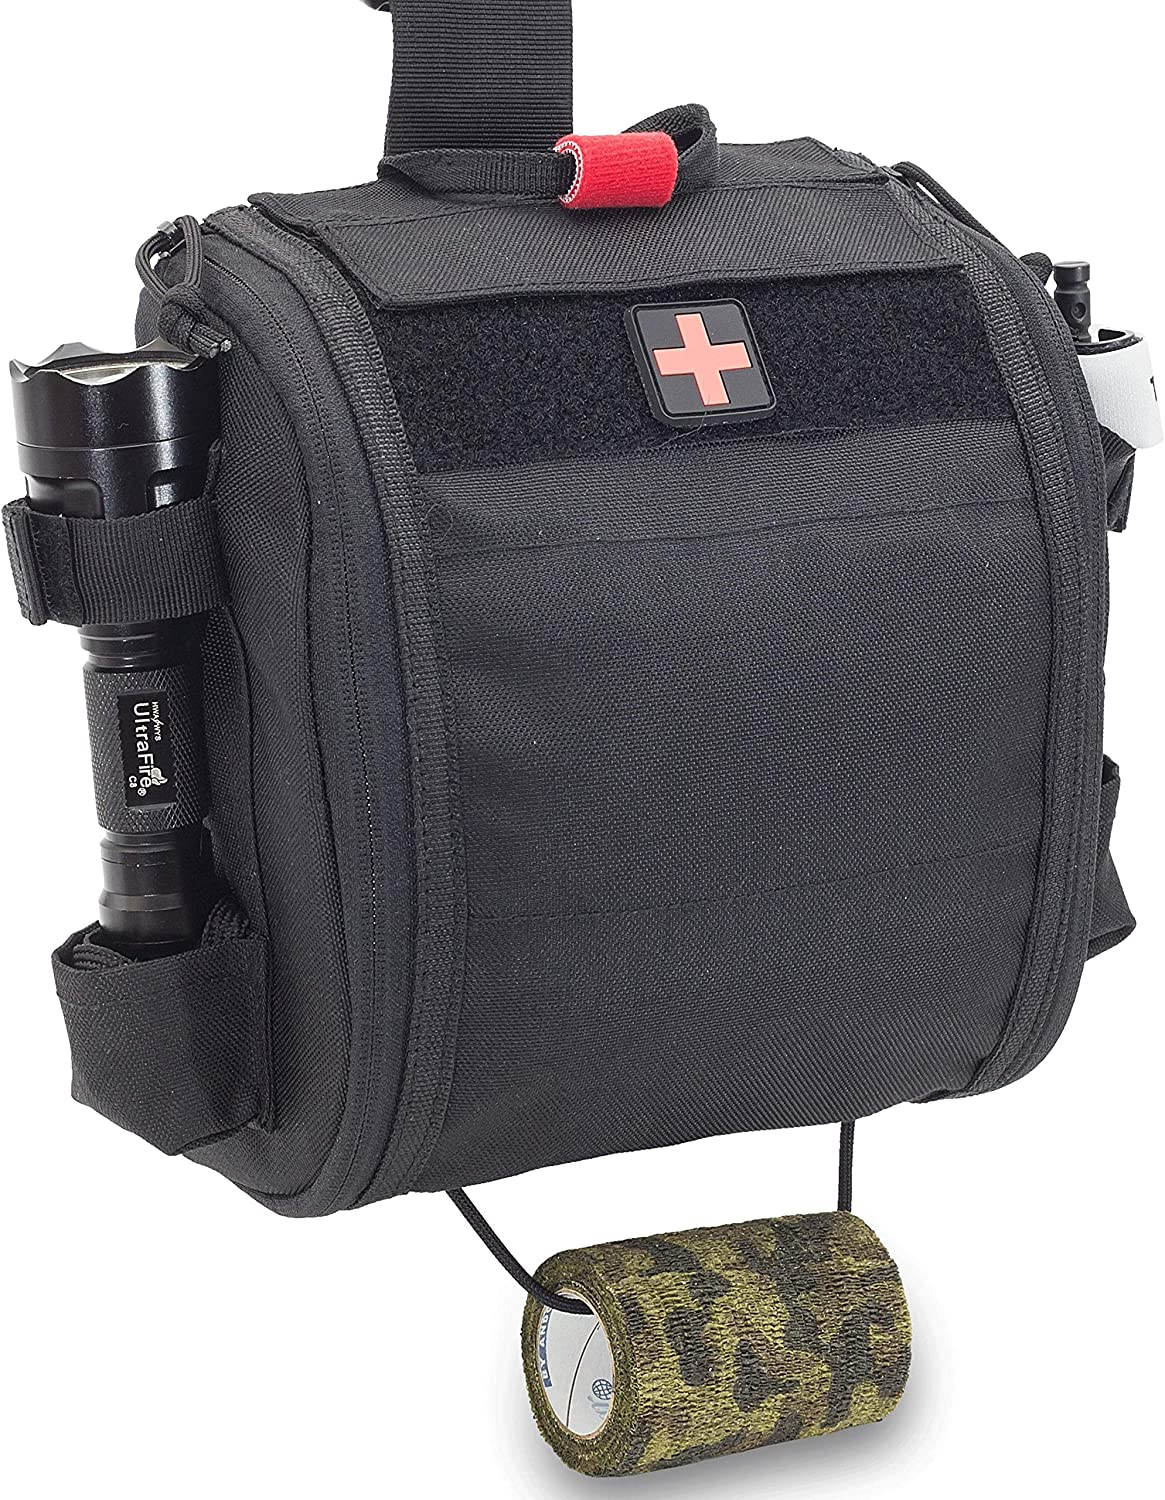 ELITE Recommendation BAGS - QUICKAID'S Outlet SALE aid first kit Paramedical